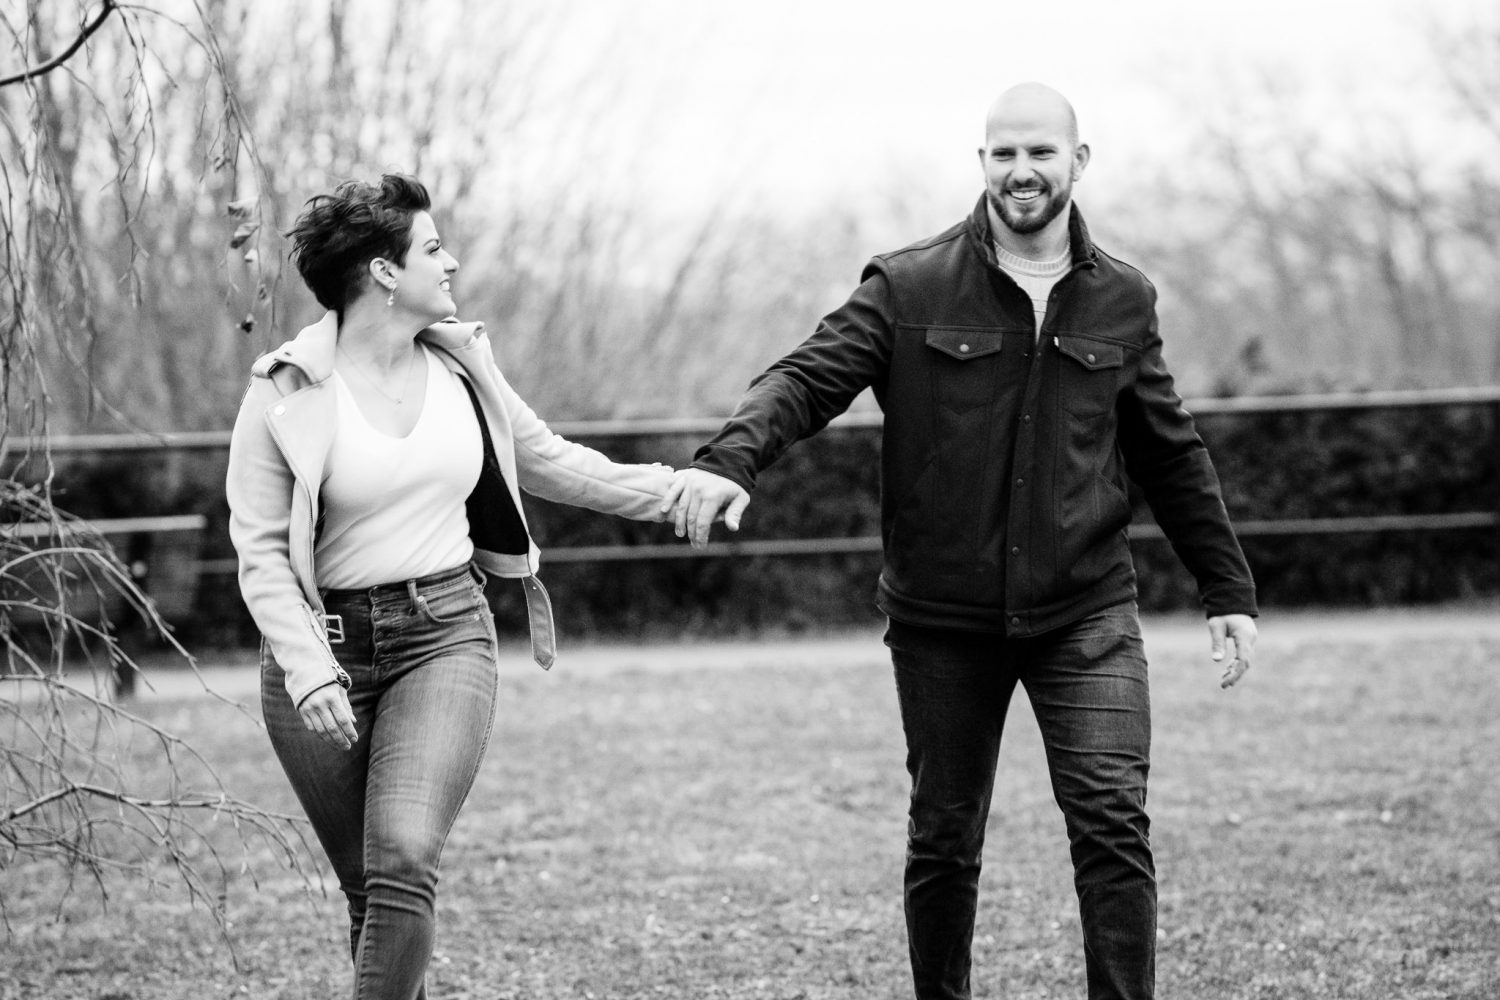 A black and white photo of a newly engaged couple. They are walking happily.